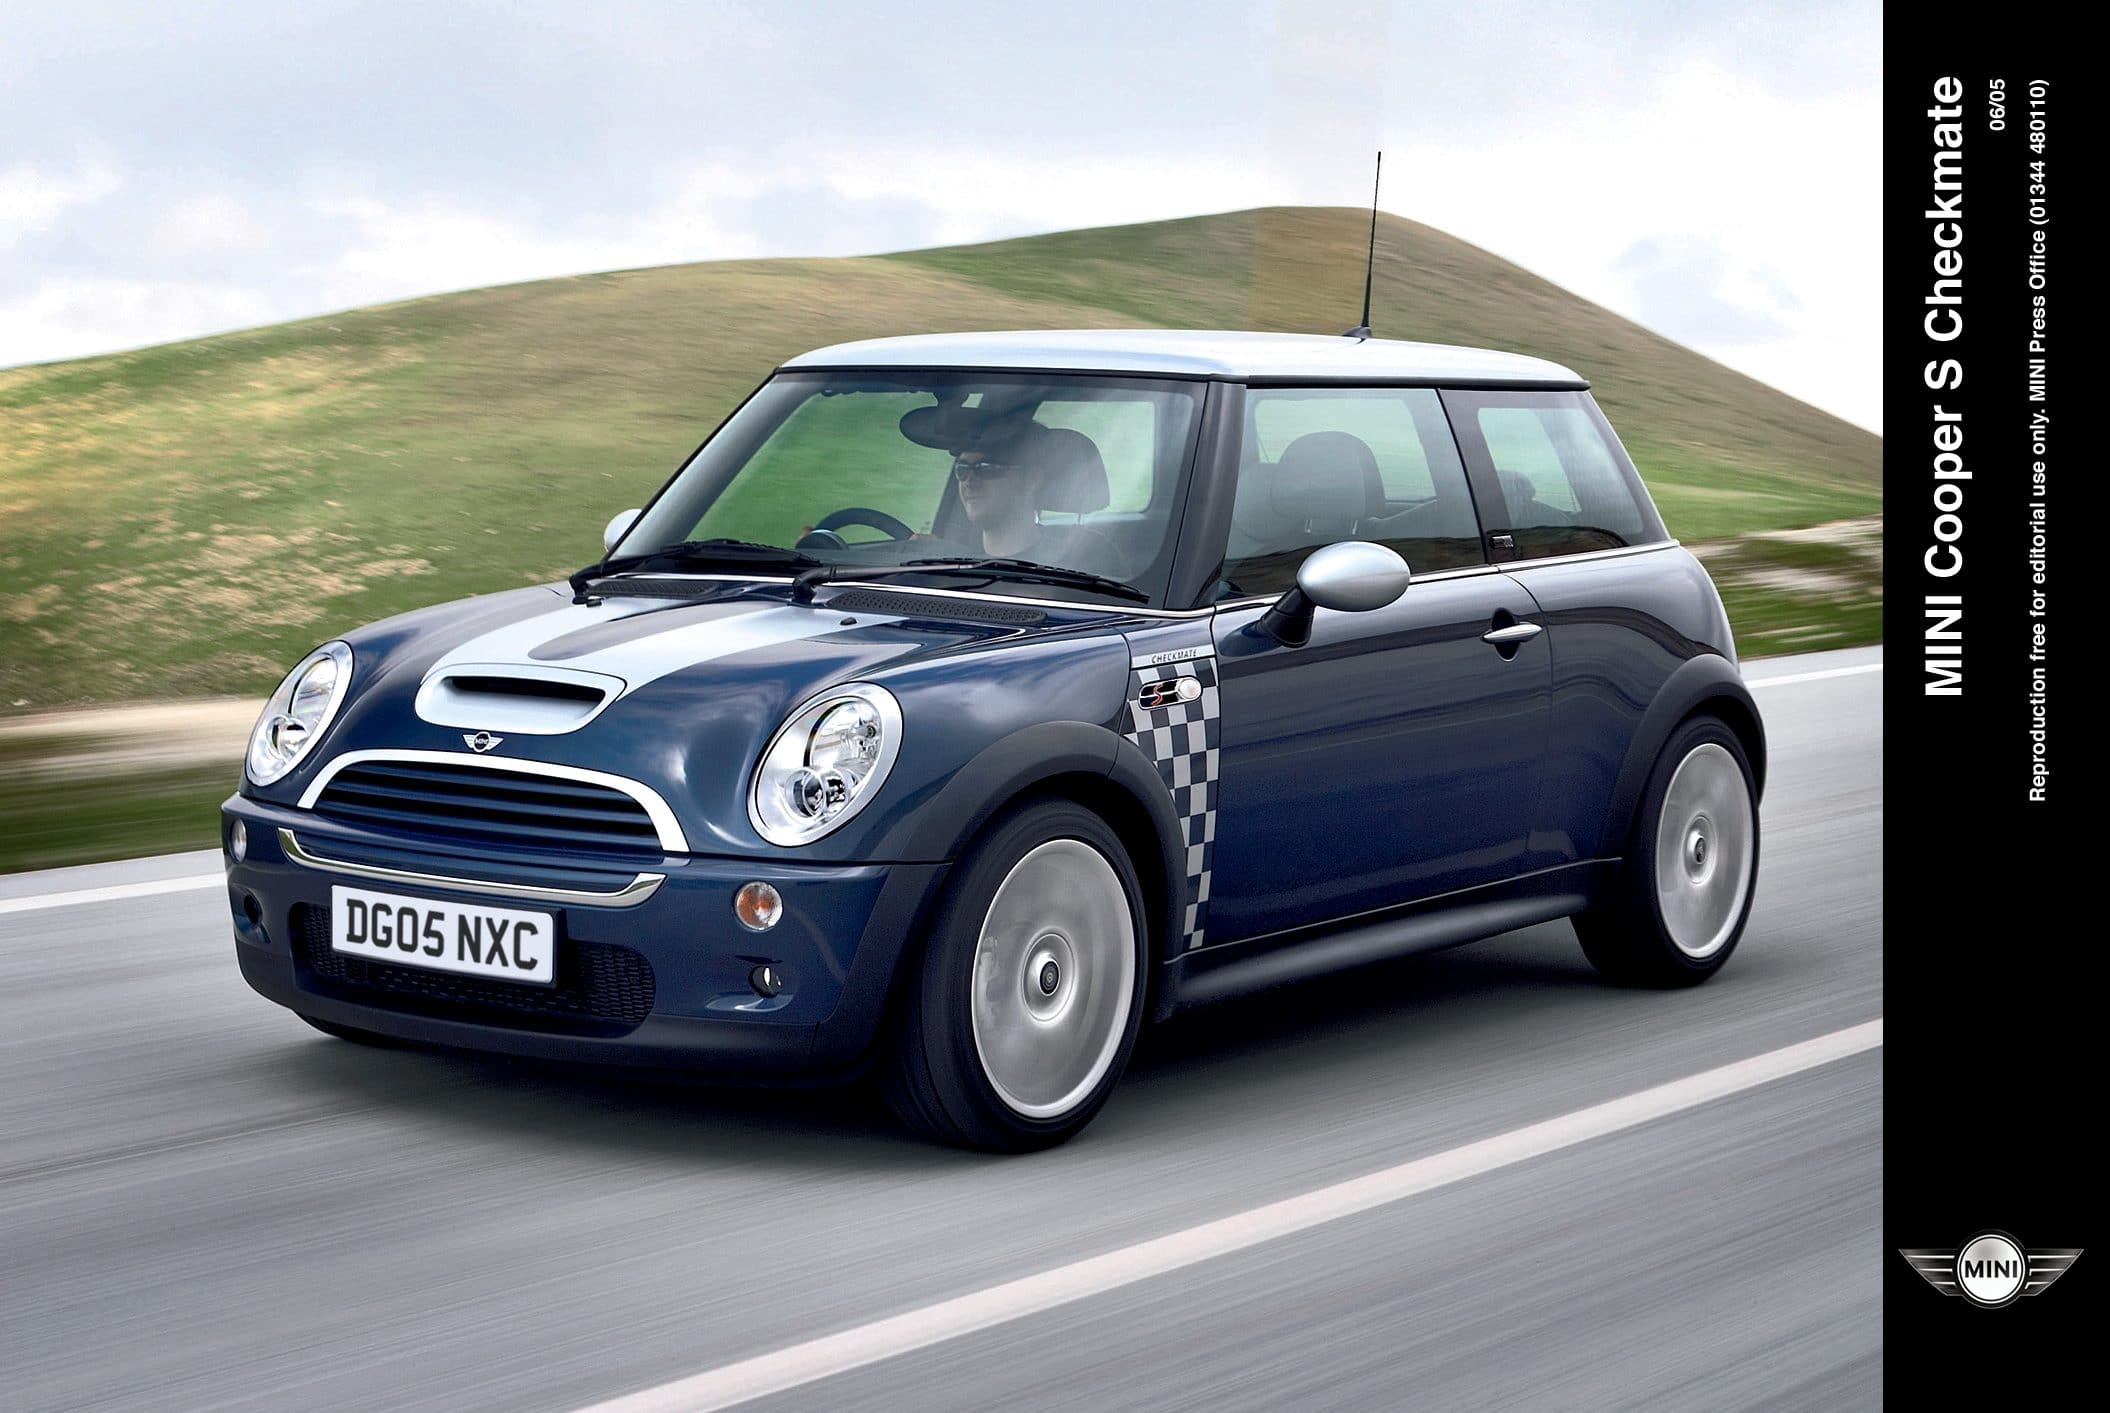 mini cooper s, mini, cooper, cooper s, hot hatch, bmw, german, oxford, motoring, automotive, cars, john cooper, supercharger, supercharged, motoring, automotive, retro car, classic car, austin mini, rover mini, italian job